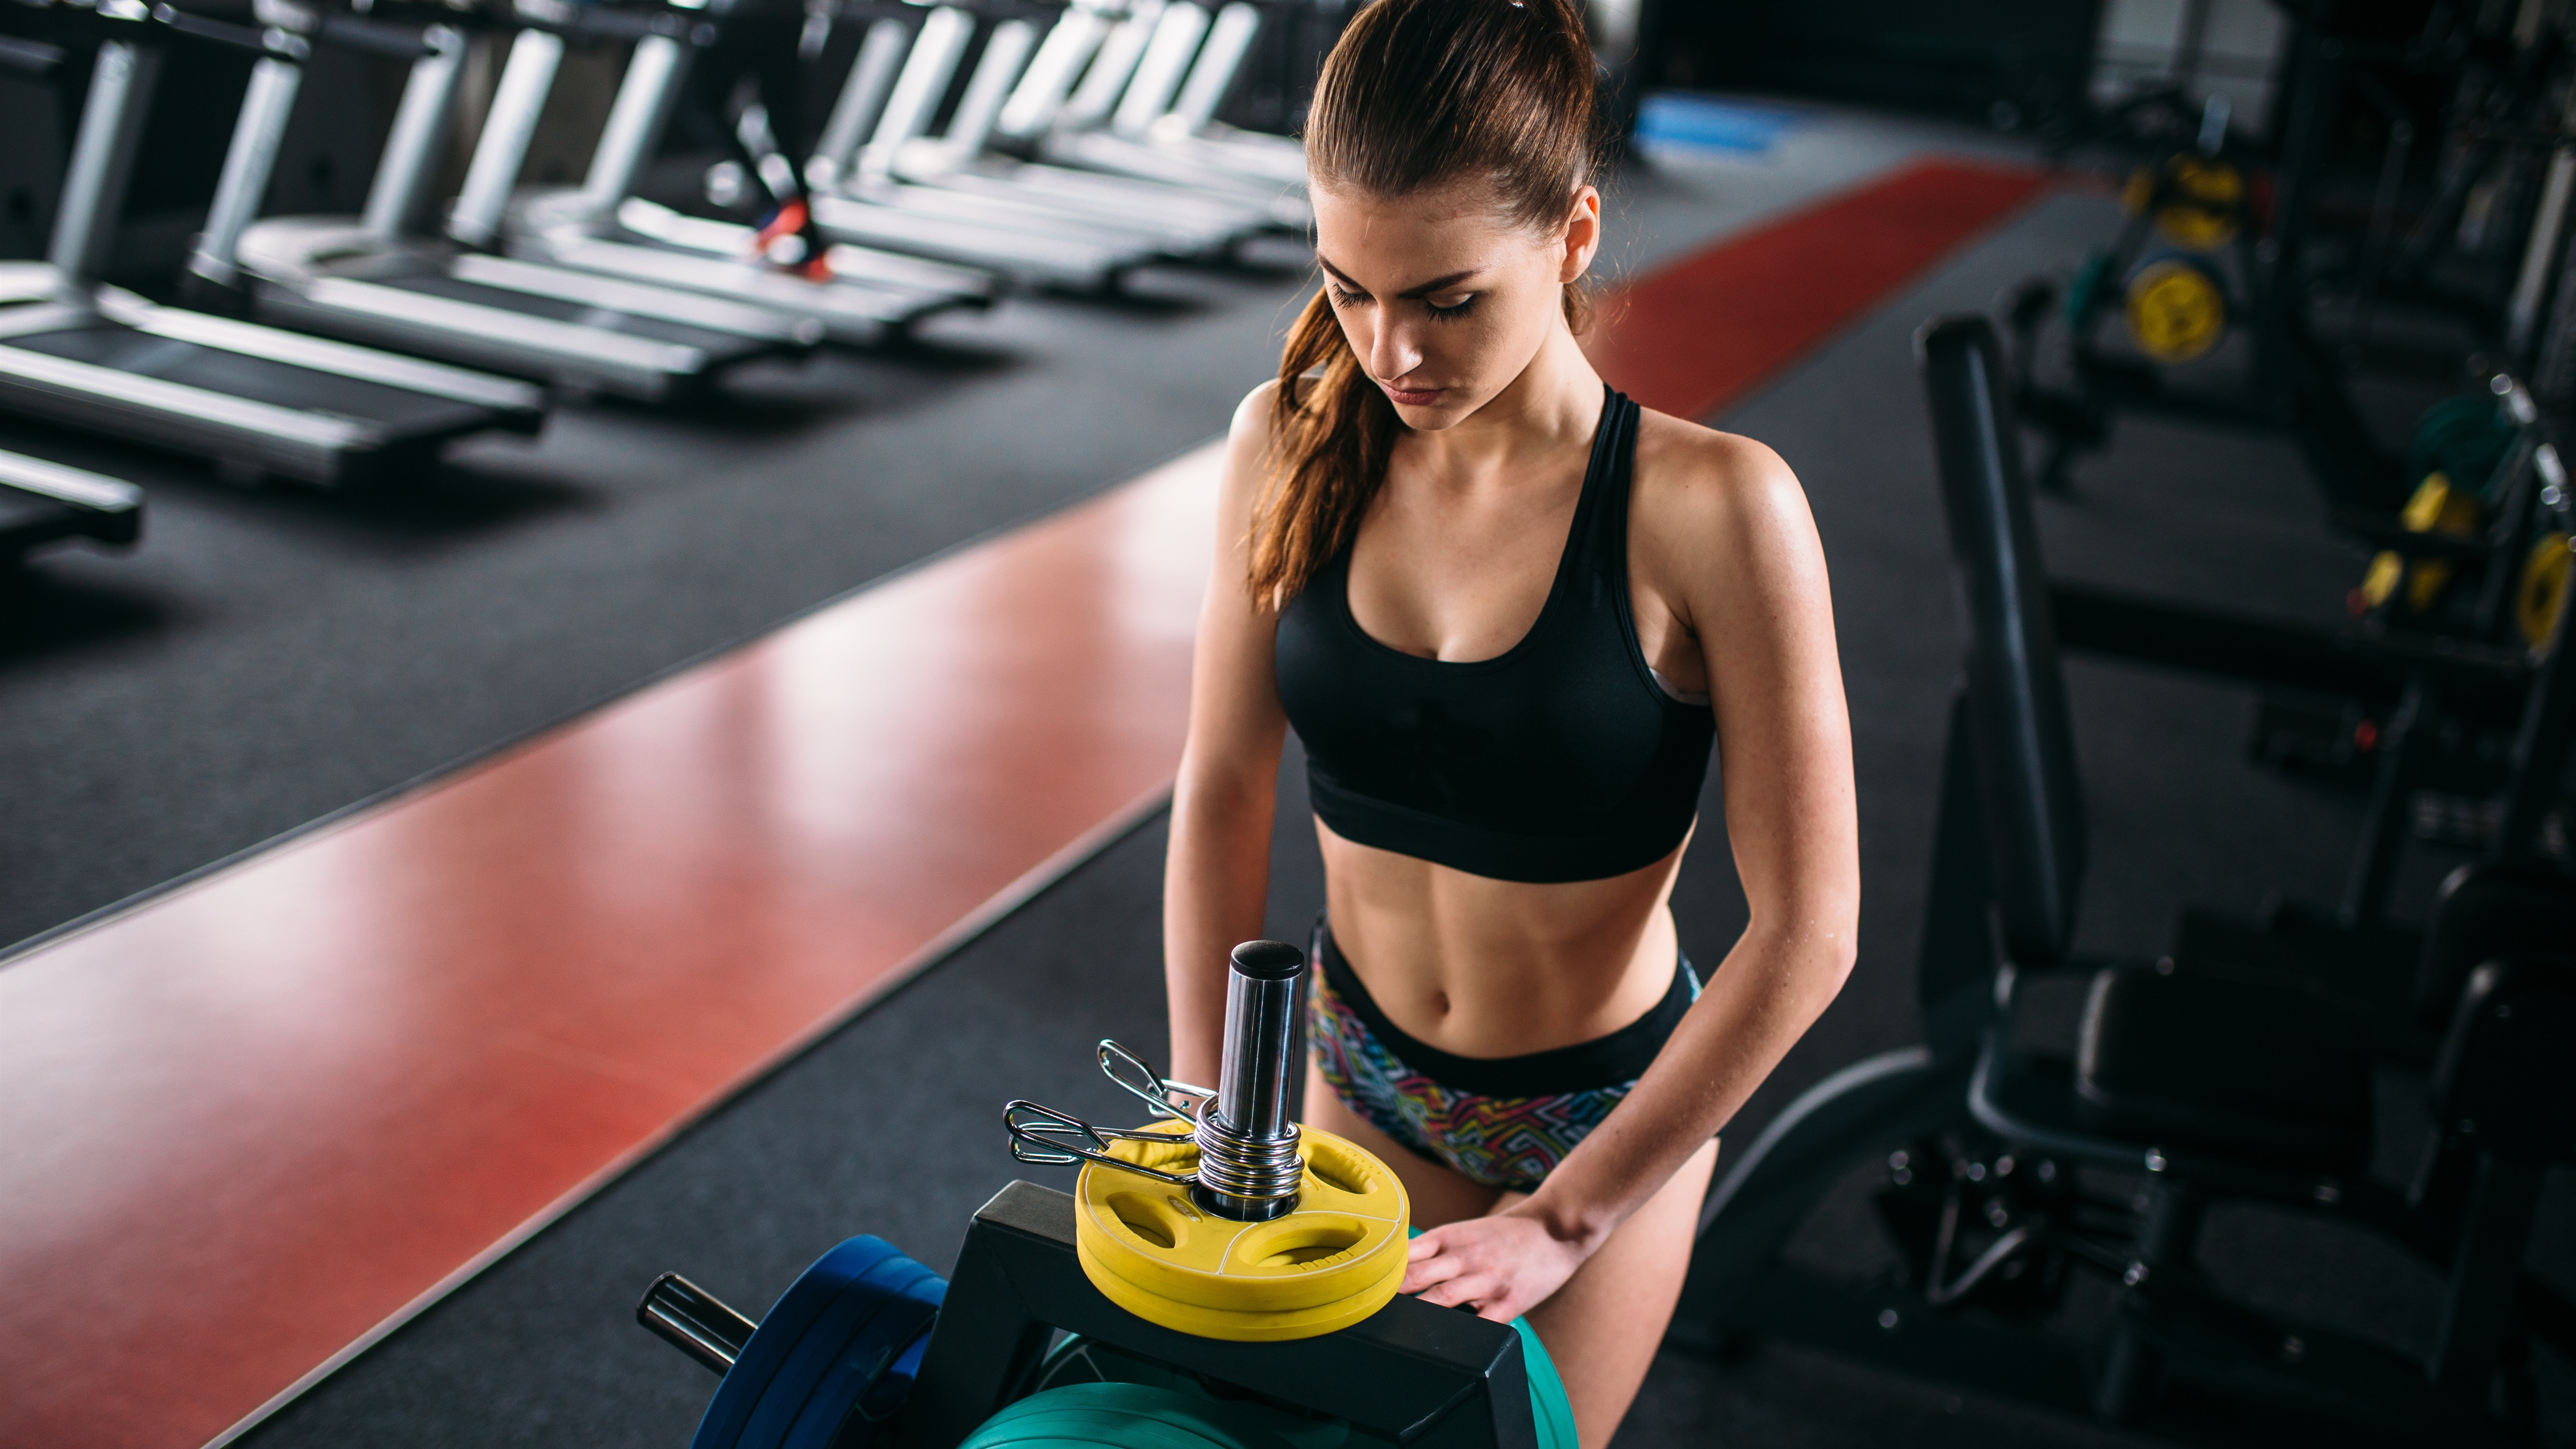 Wallpaper Fitness Girl Gym 5120x2880 Uhd 5k Picture Image